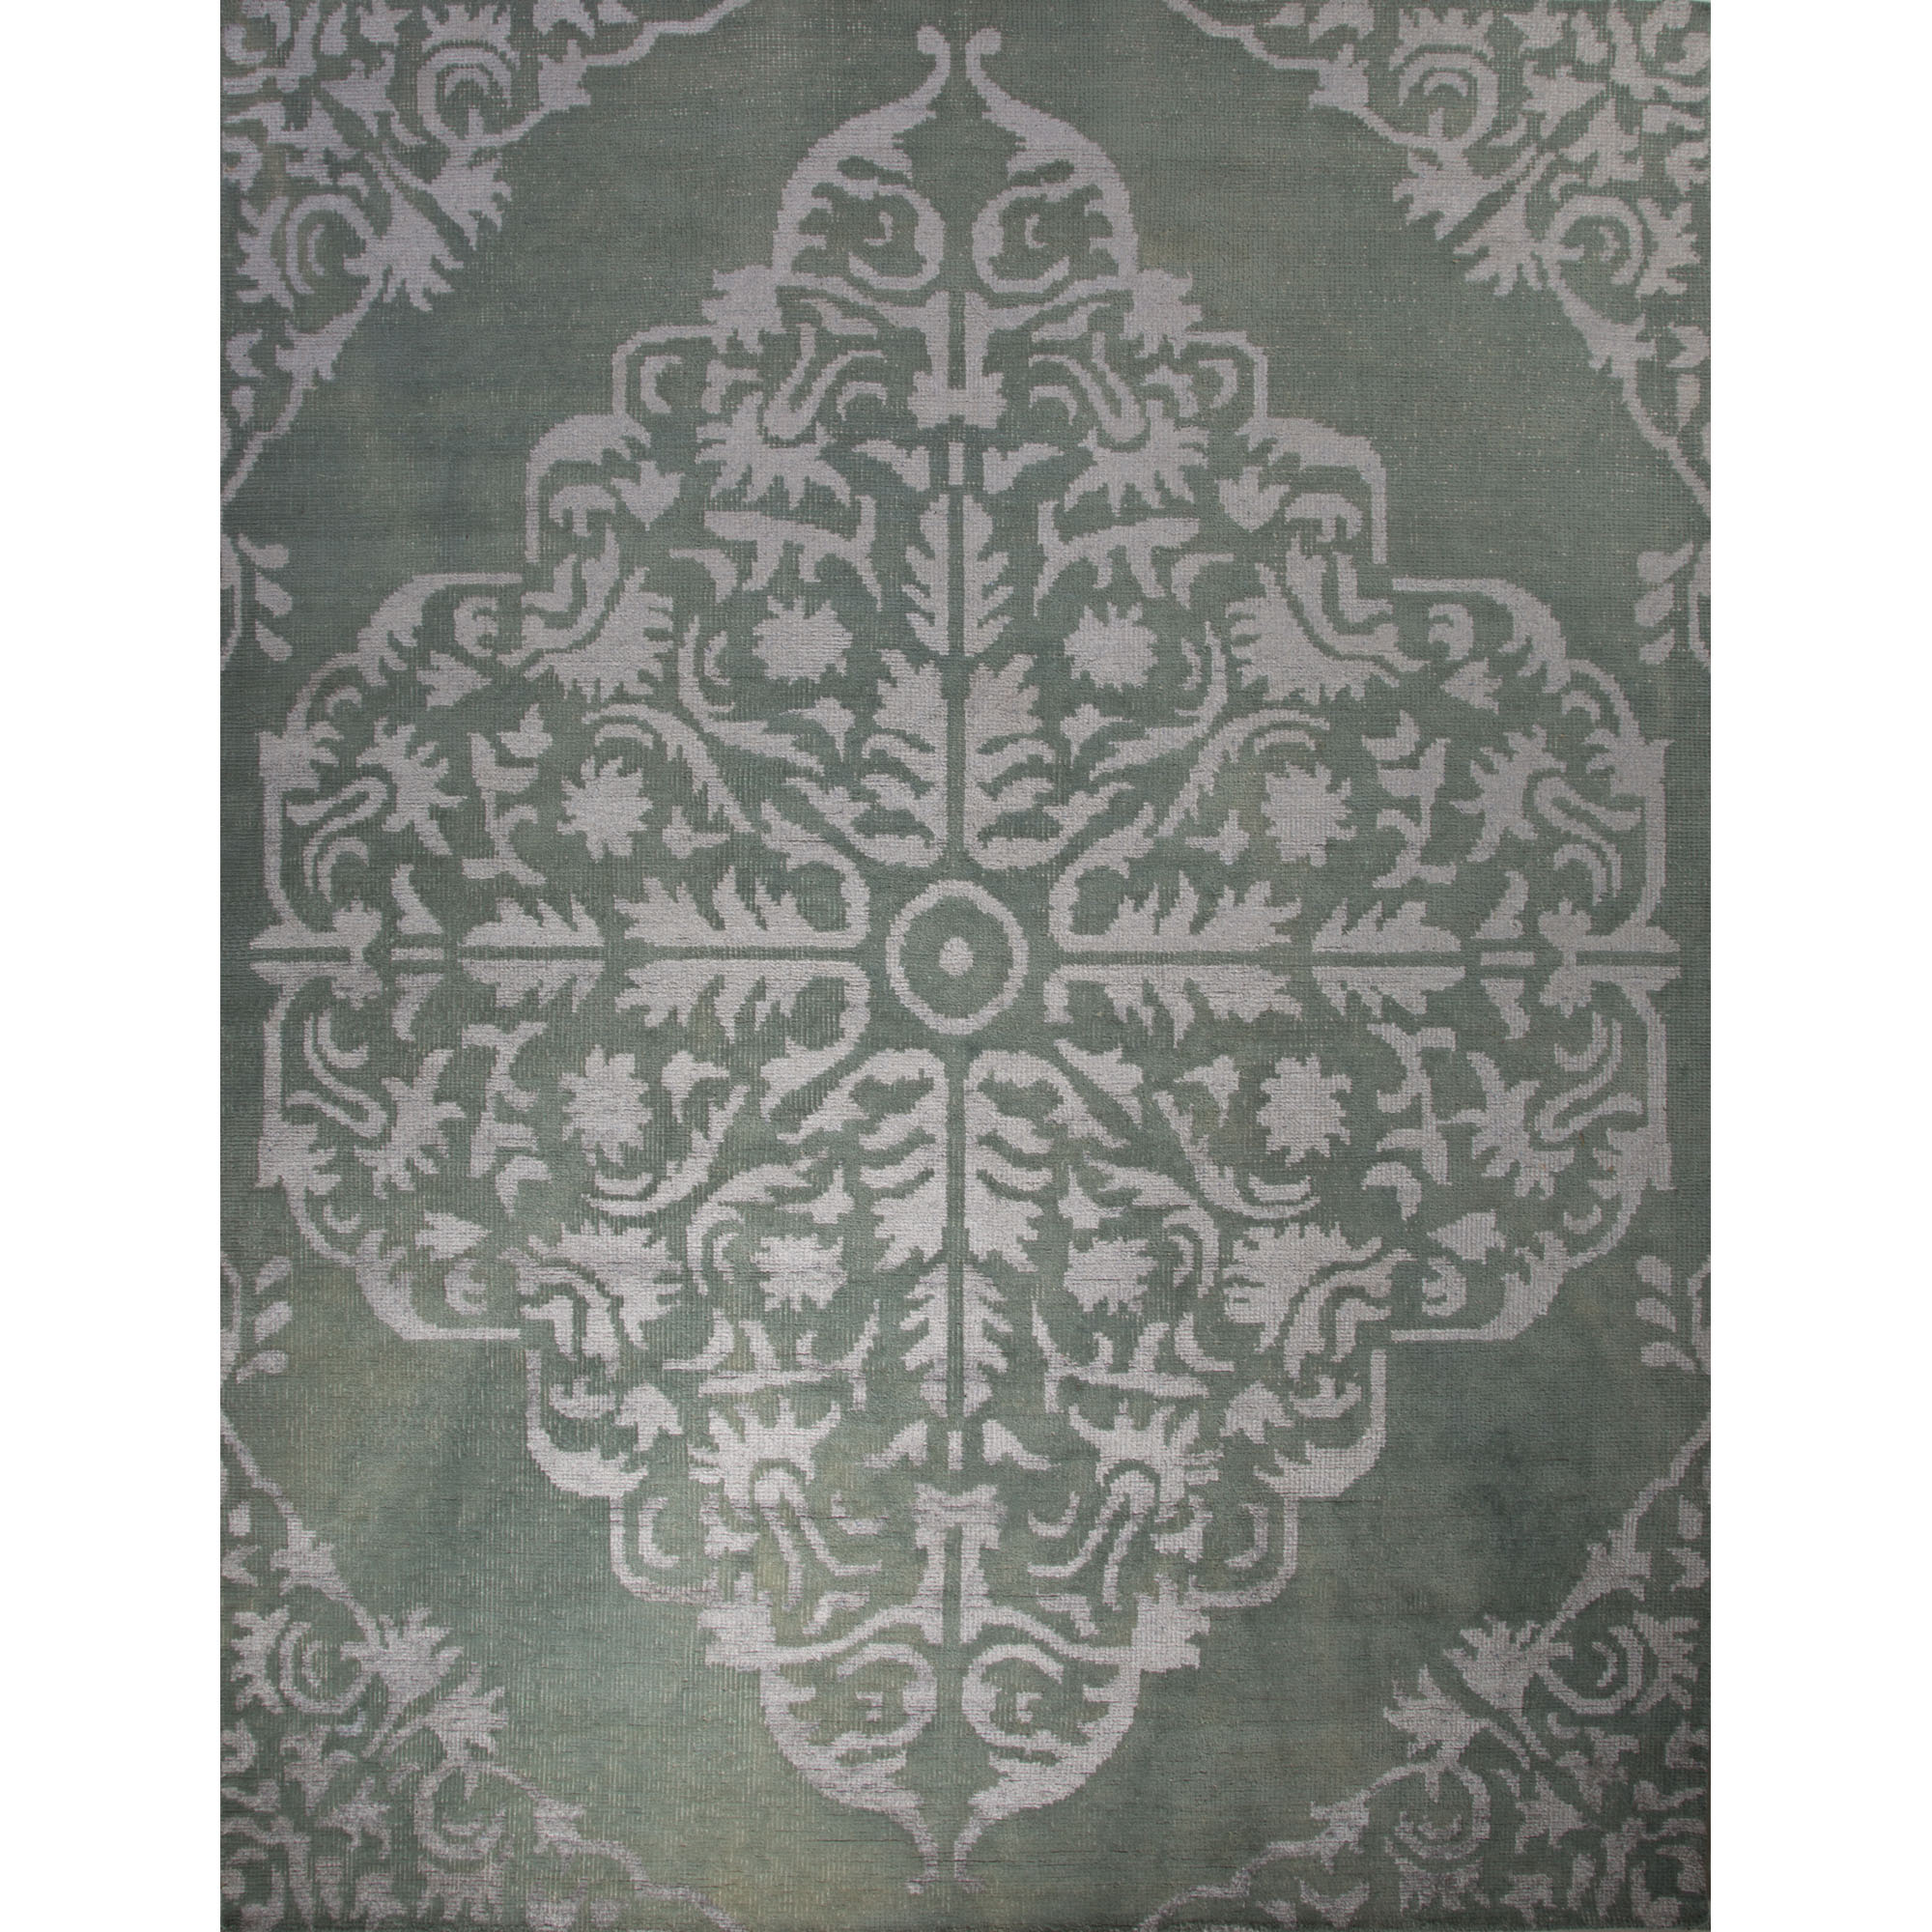 Heritage 8 x 11 Rug by JAIPUR Living at Malouf Furniture Co.